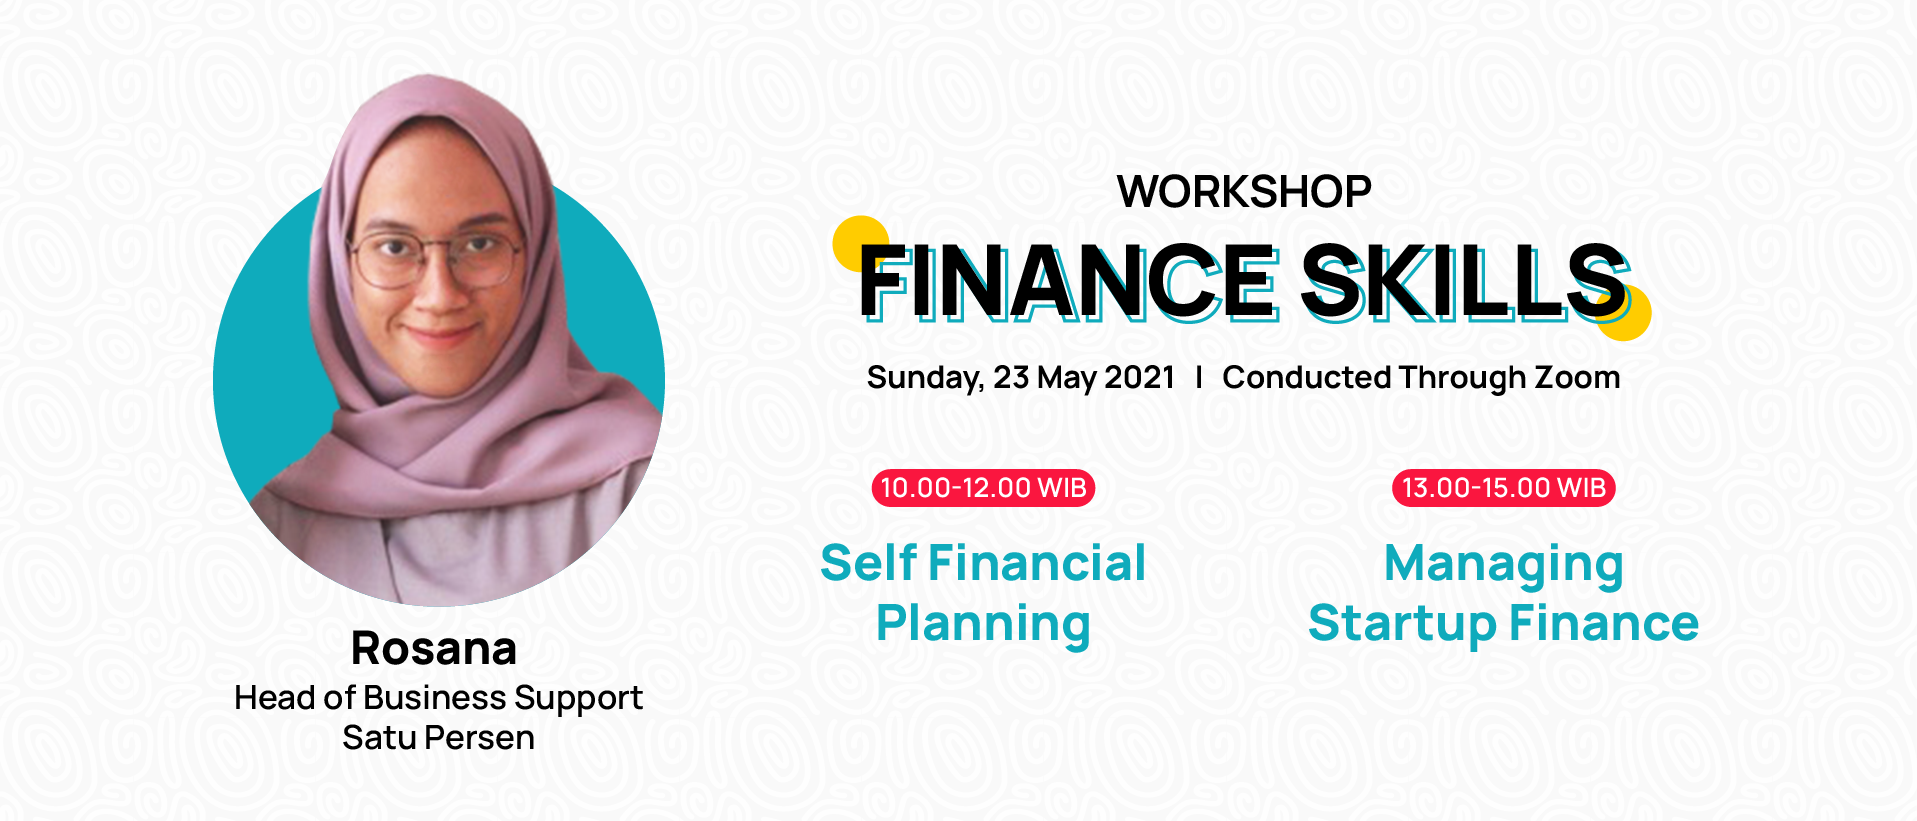 Workshop Finance Skills